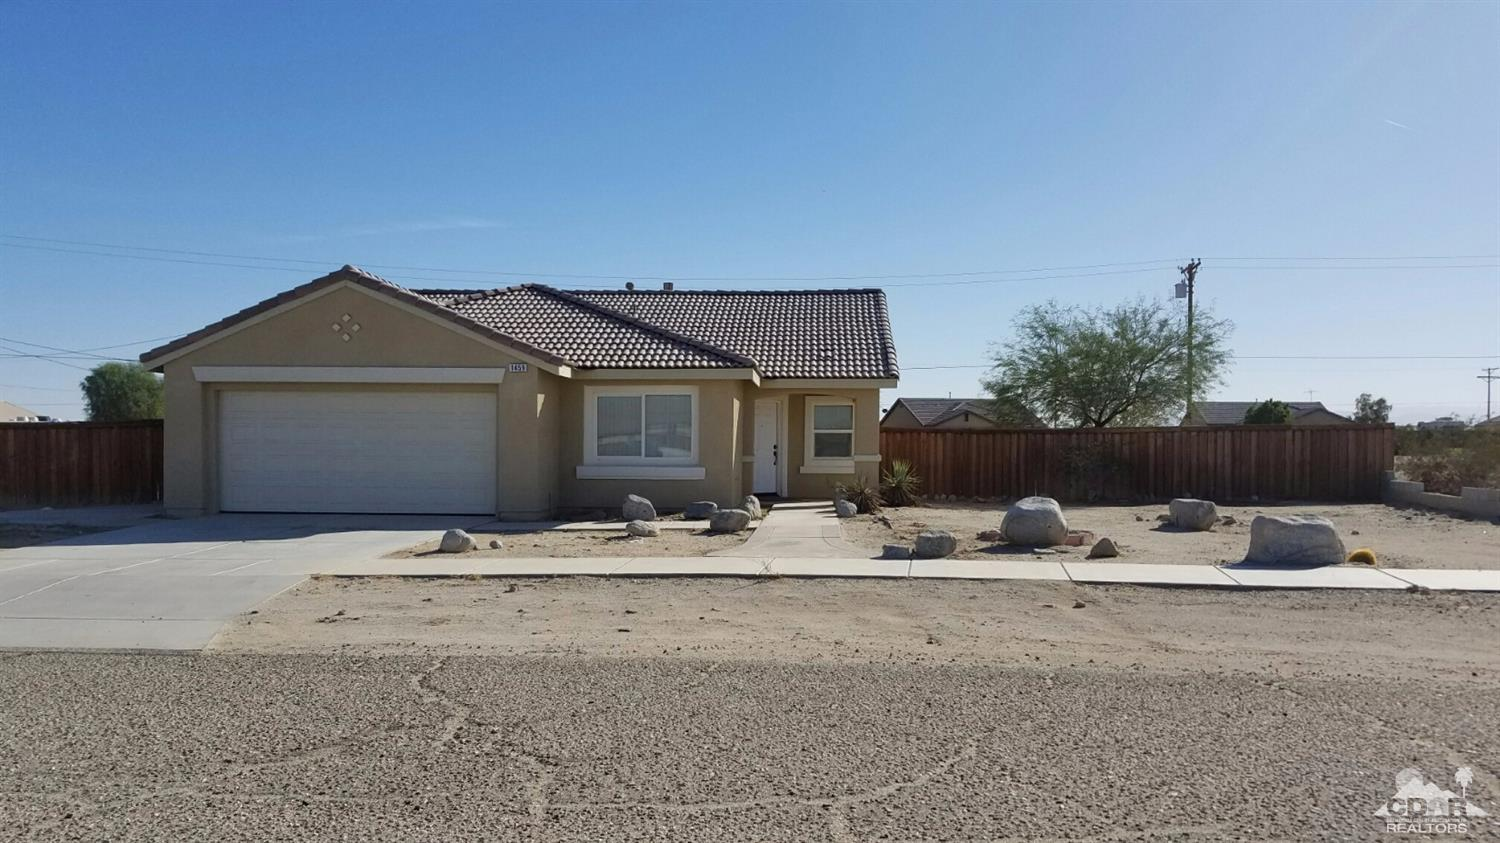 1459 Grissom Ave, Thermal, CA 92274